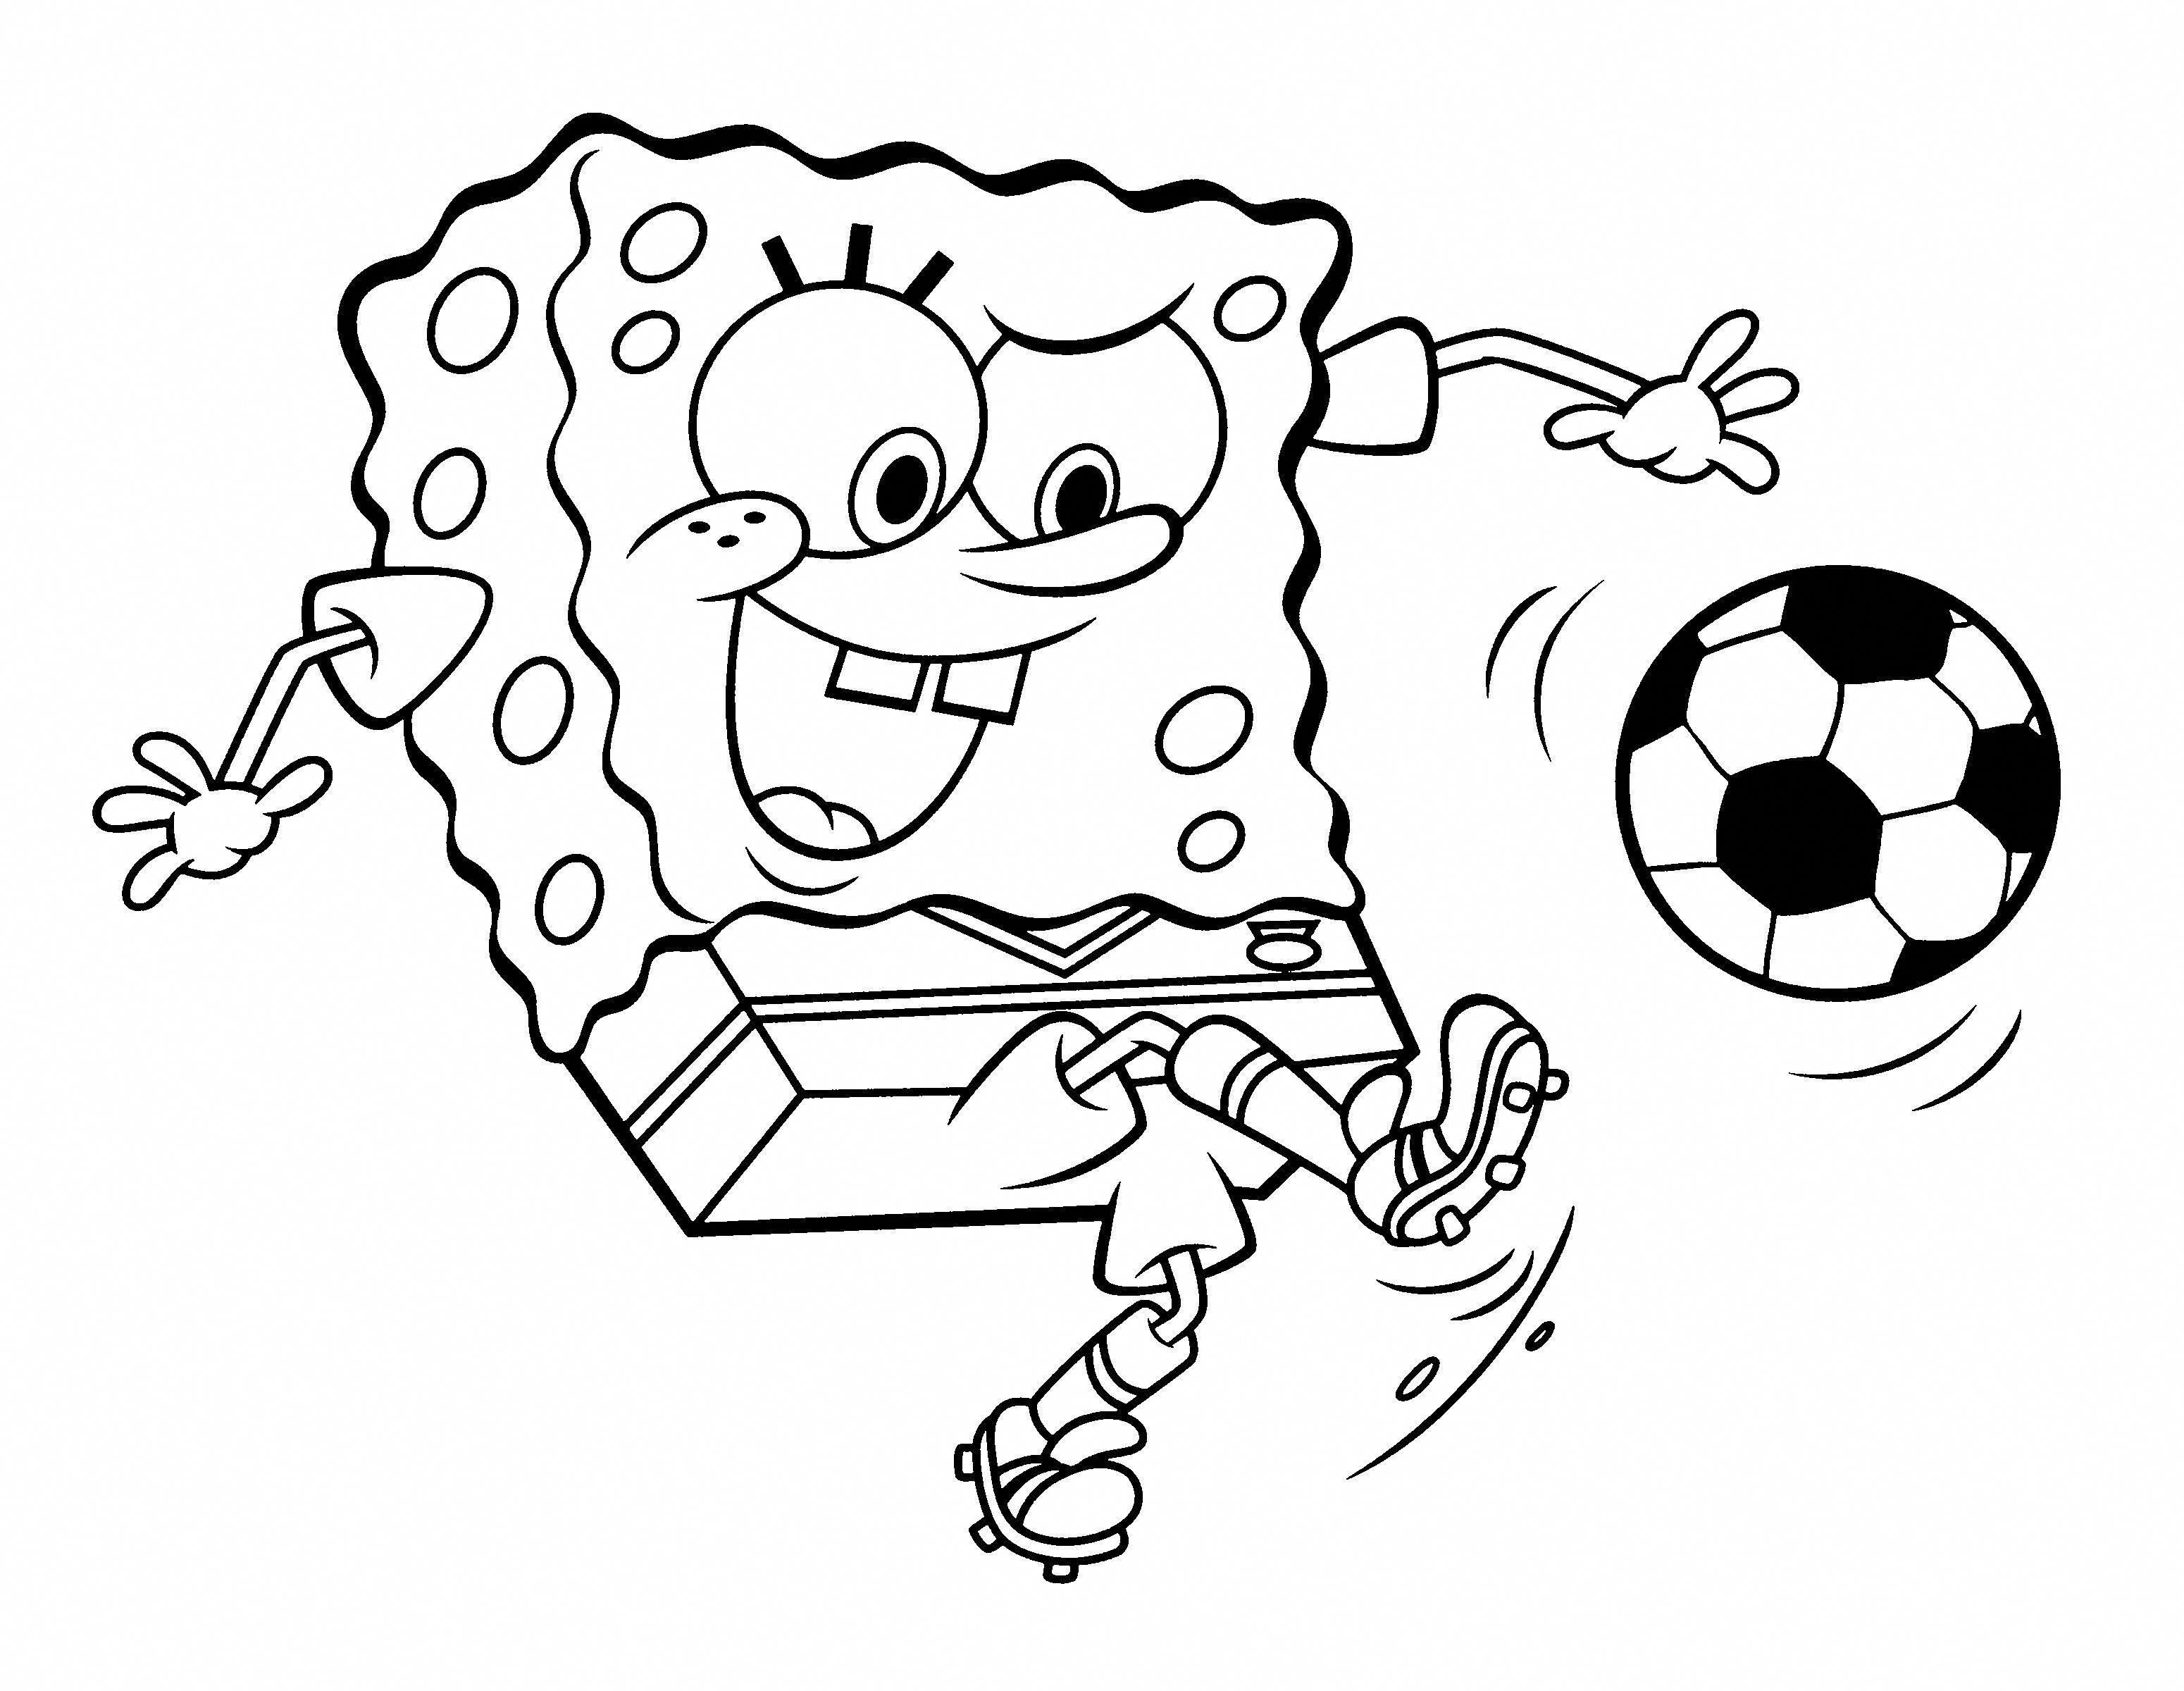 Spongebob Football Coloring Pages From The Thousand Images On The Web In Relation To Spongeb Football Coloring Pages Spongebob Coloring Sports Coloring Pages